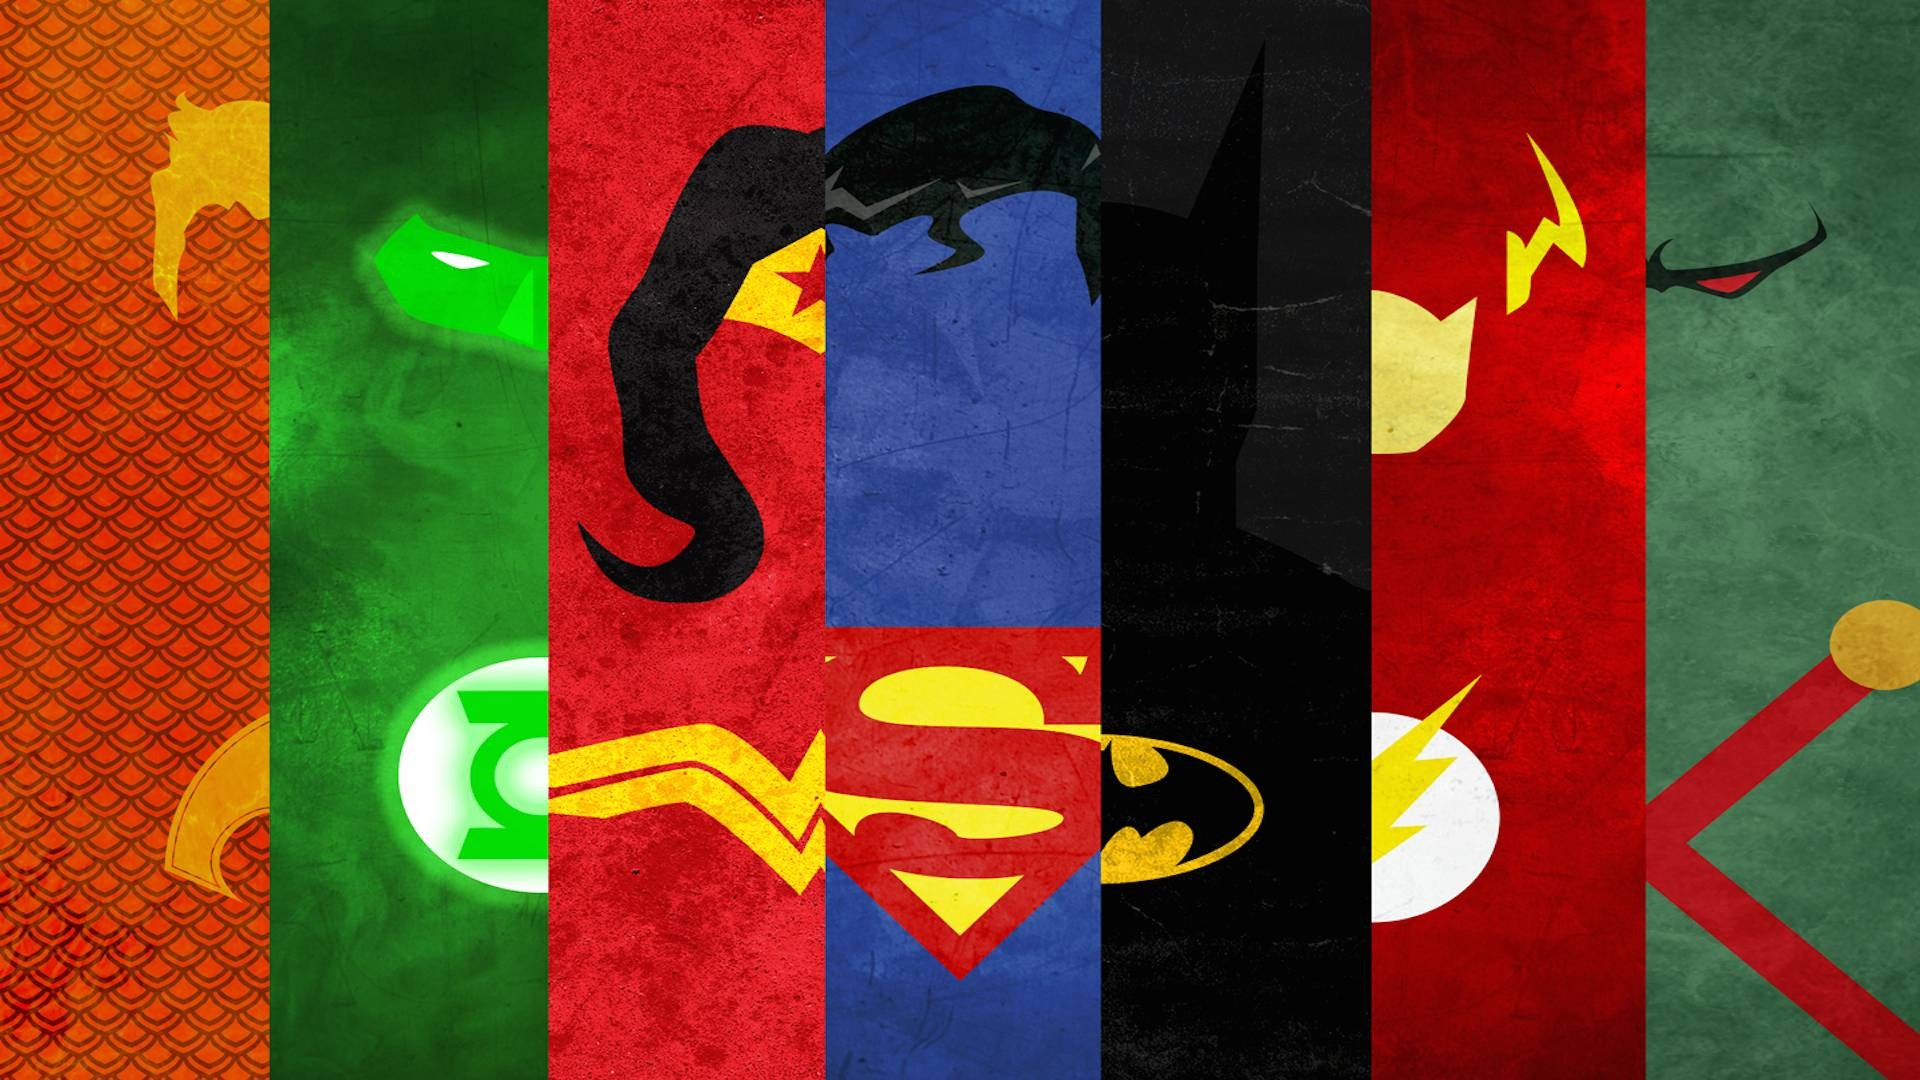 Justice League Wallpaper ·① Download Free Amazing